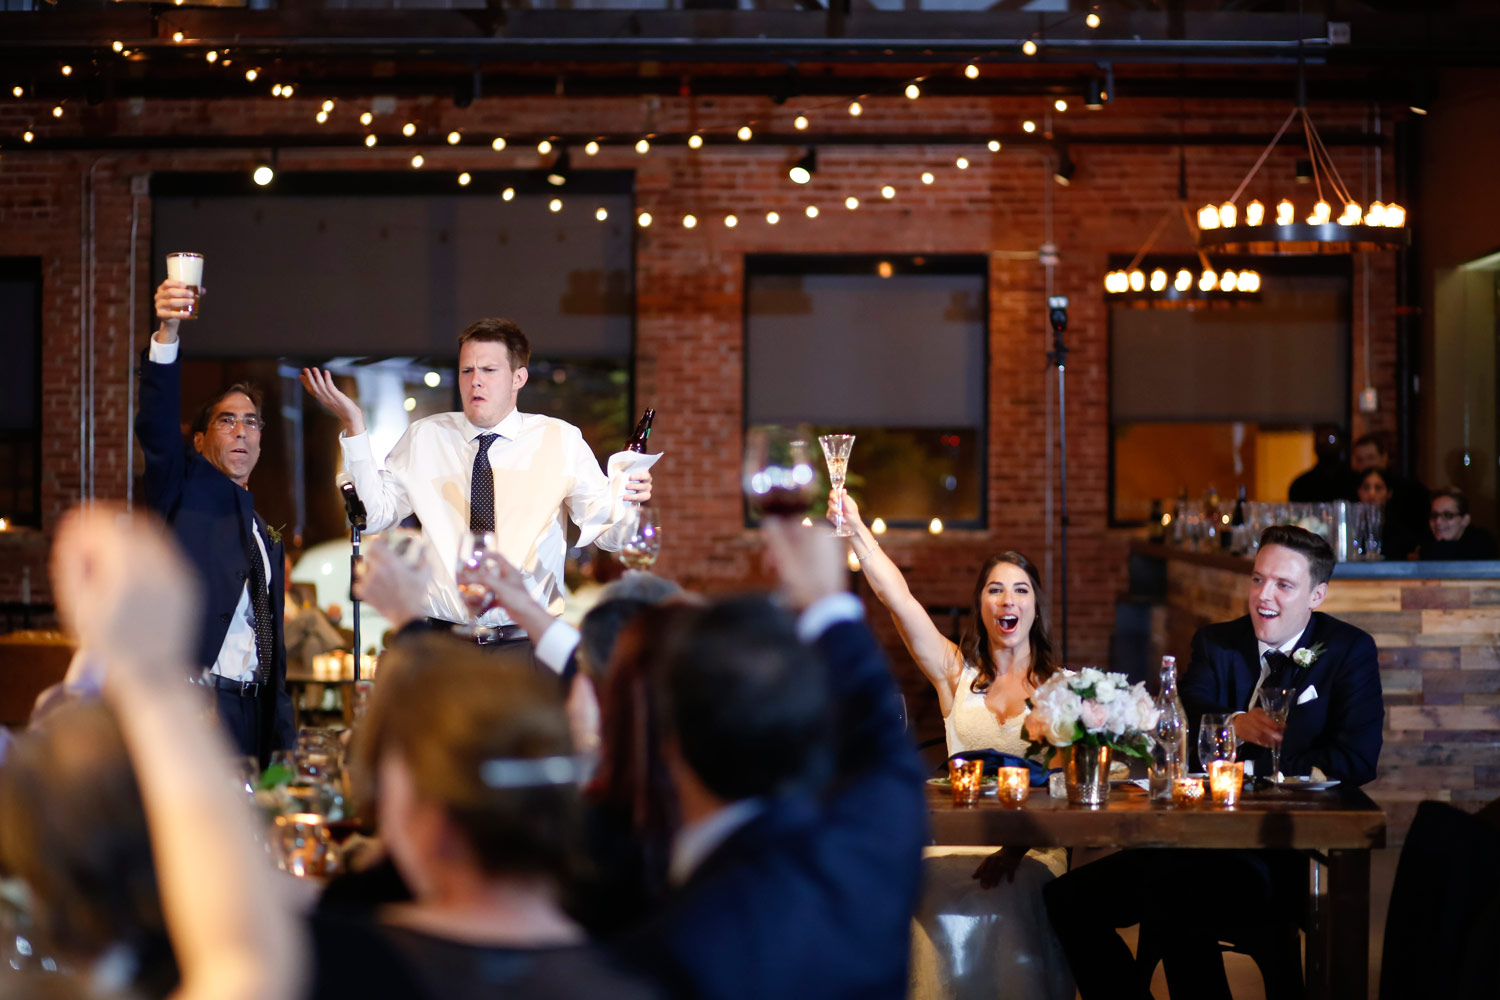 ovation-chicago-wedding-toast-speech-spotted-cow-ruthie-hauge-wedding-photography-journalistic-natural-candid-best-of-fox.jpg